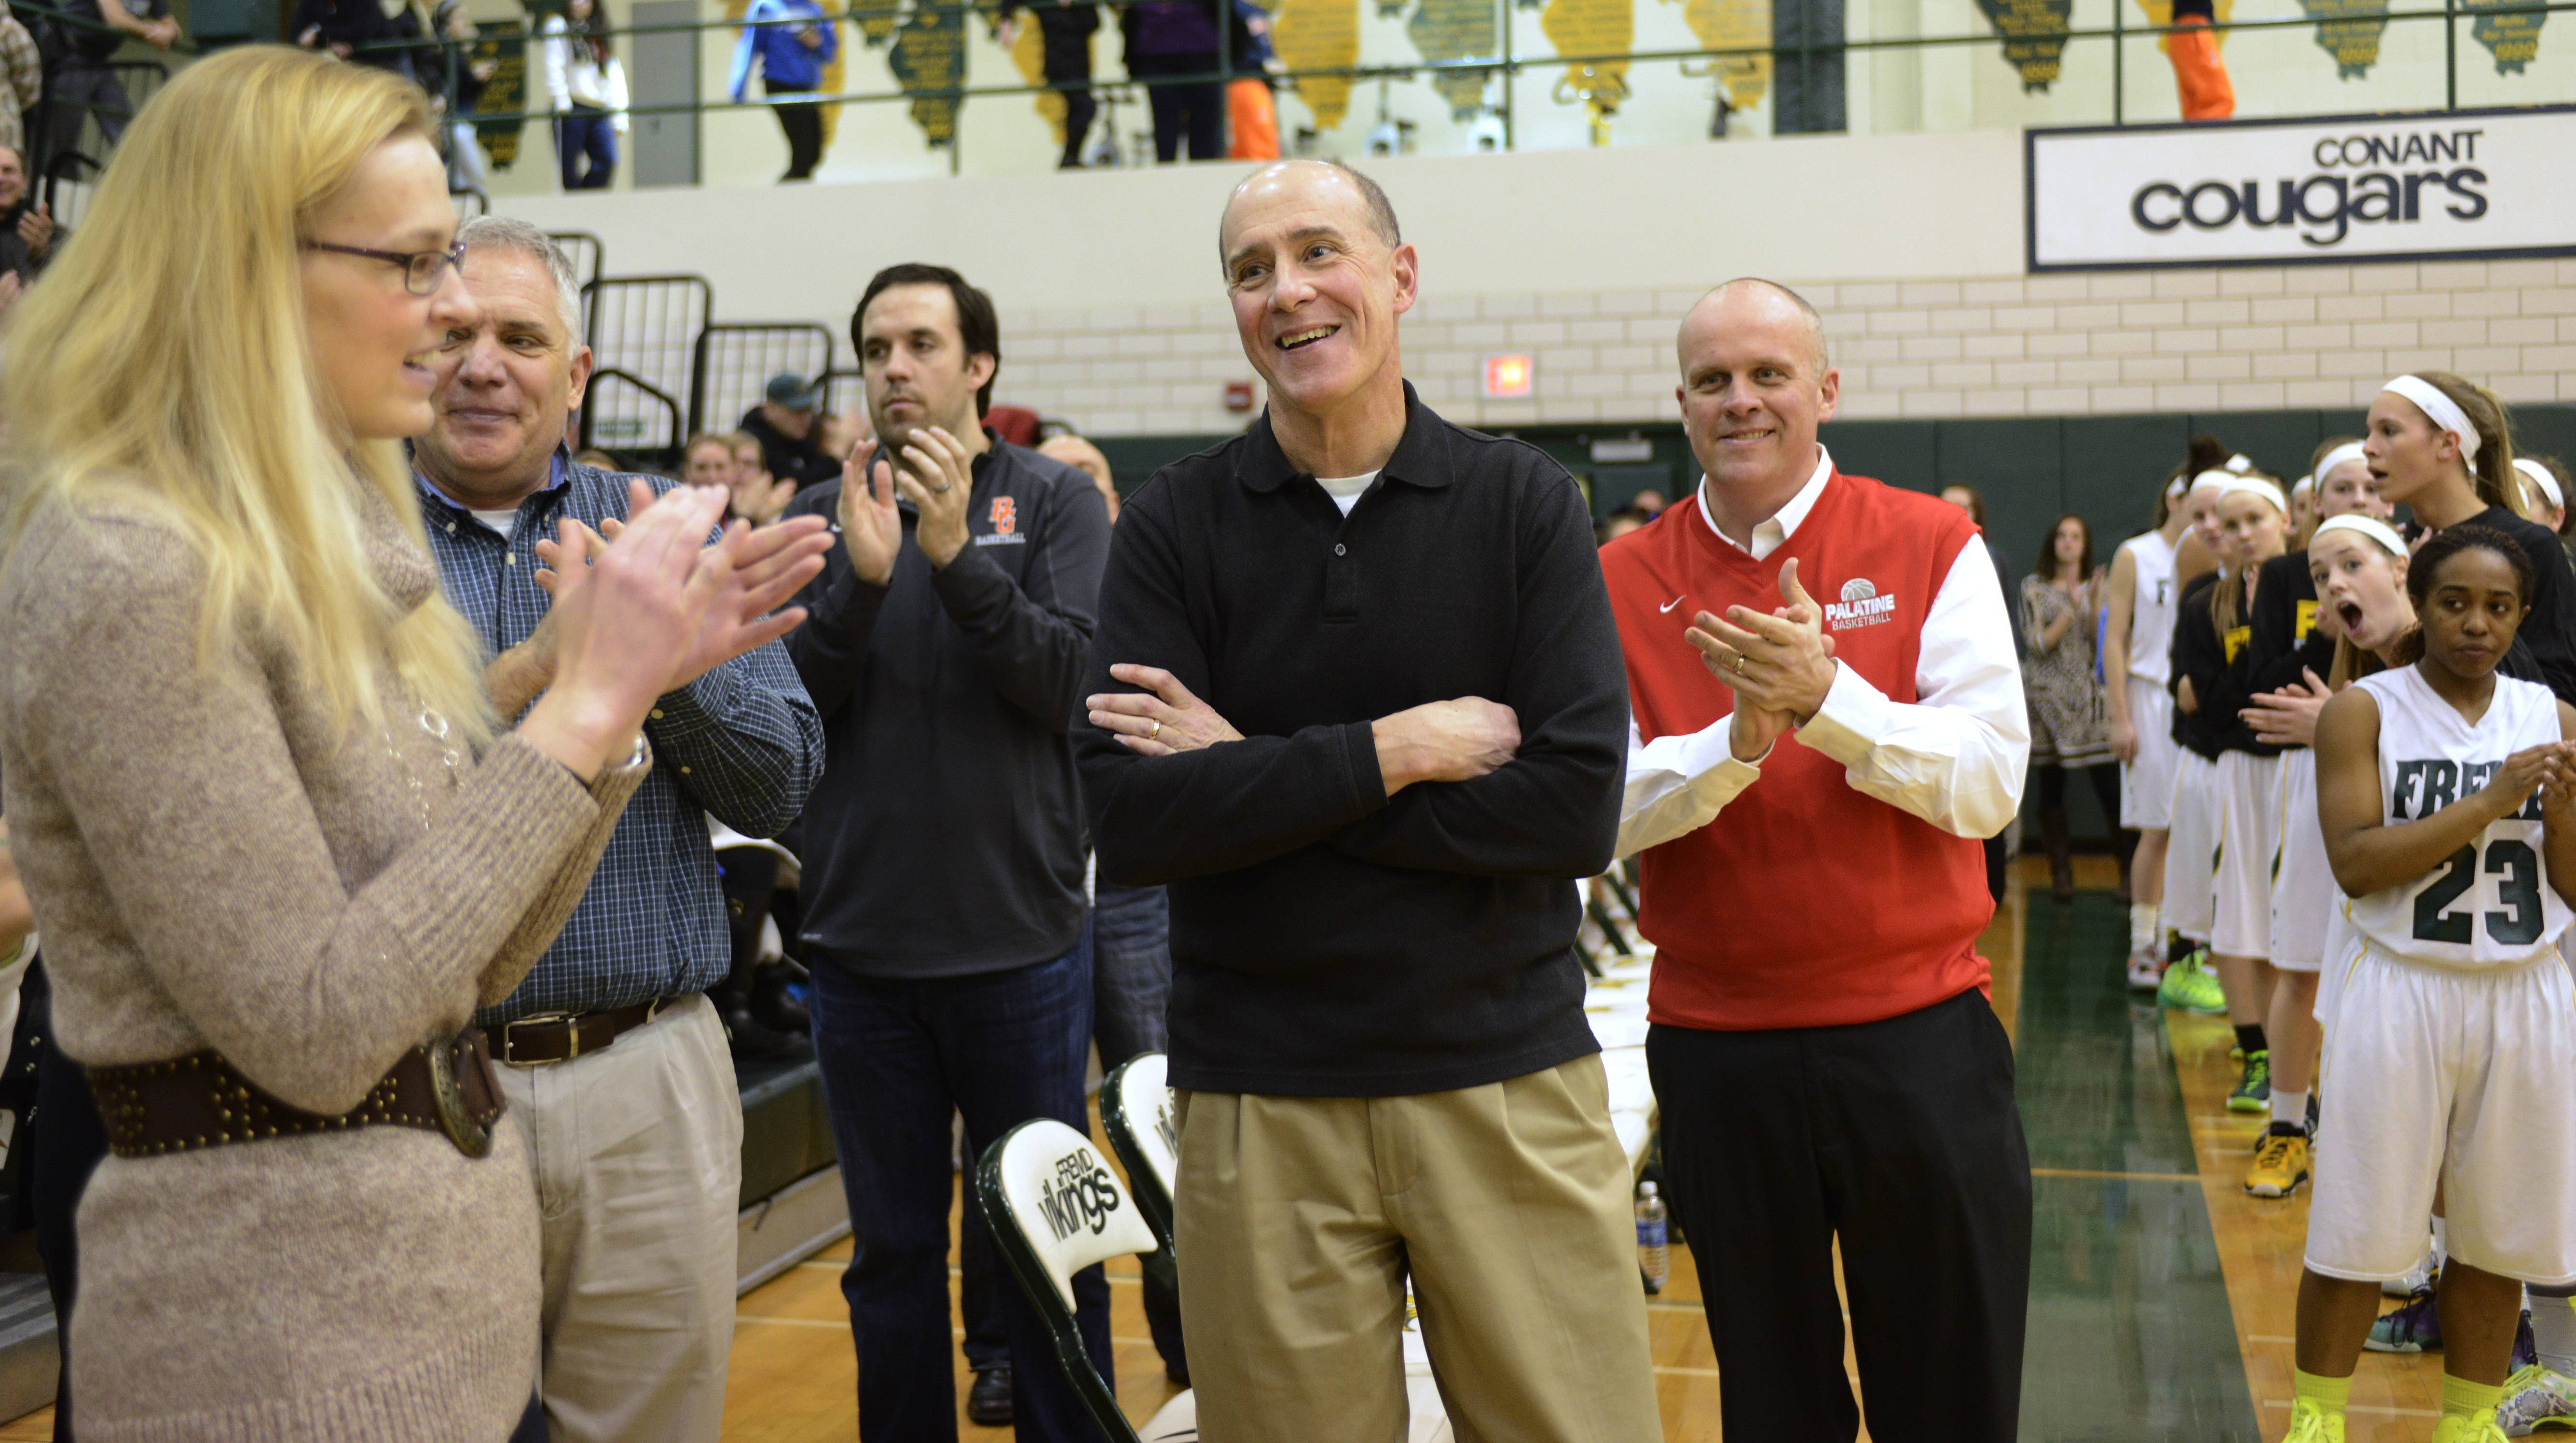 Retiring Conant coach Dan Travers, middle, is honored by fellow coaches prior to Wednesday's Mid Suburban League championship game in Palatine.